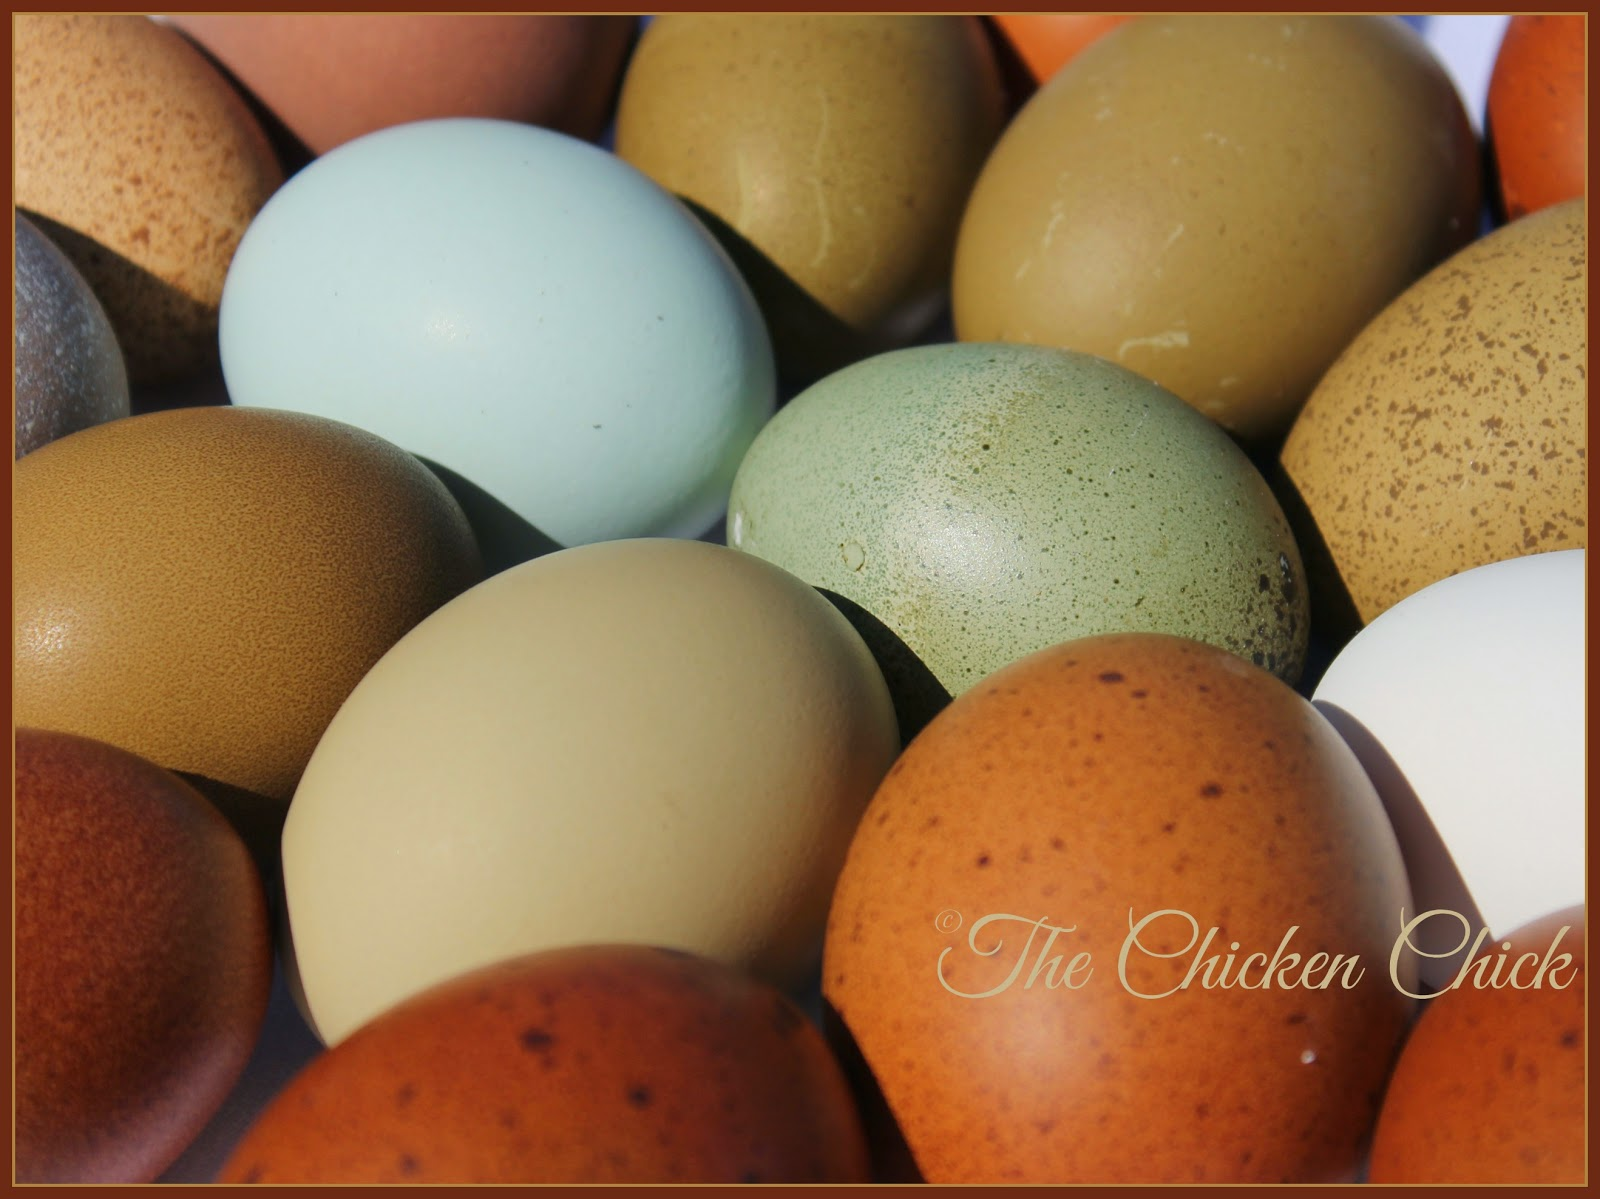 The color of an egg is determined by the hen's breed/genetics. Eggs can be white, brown, blue or any combination of those colors.